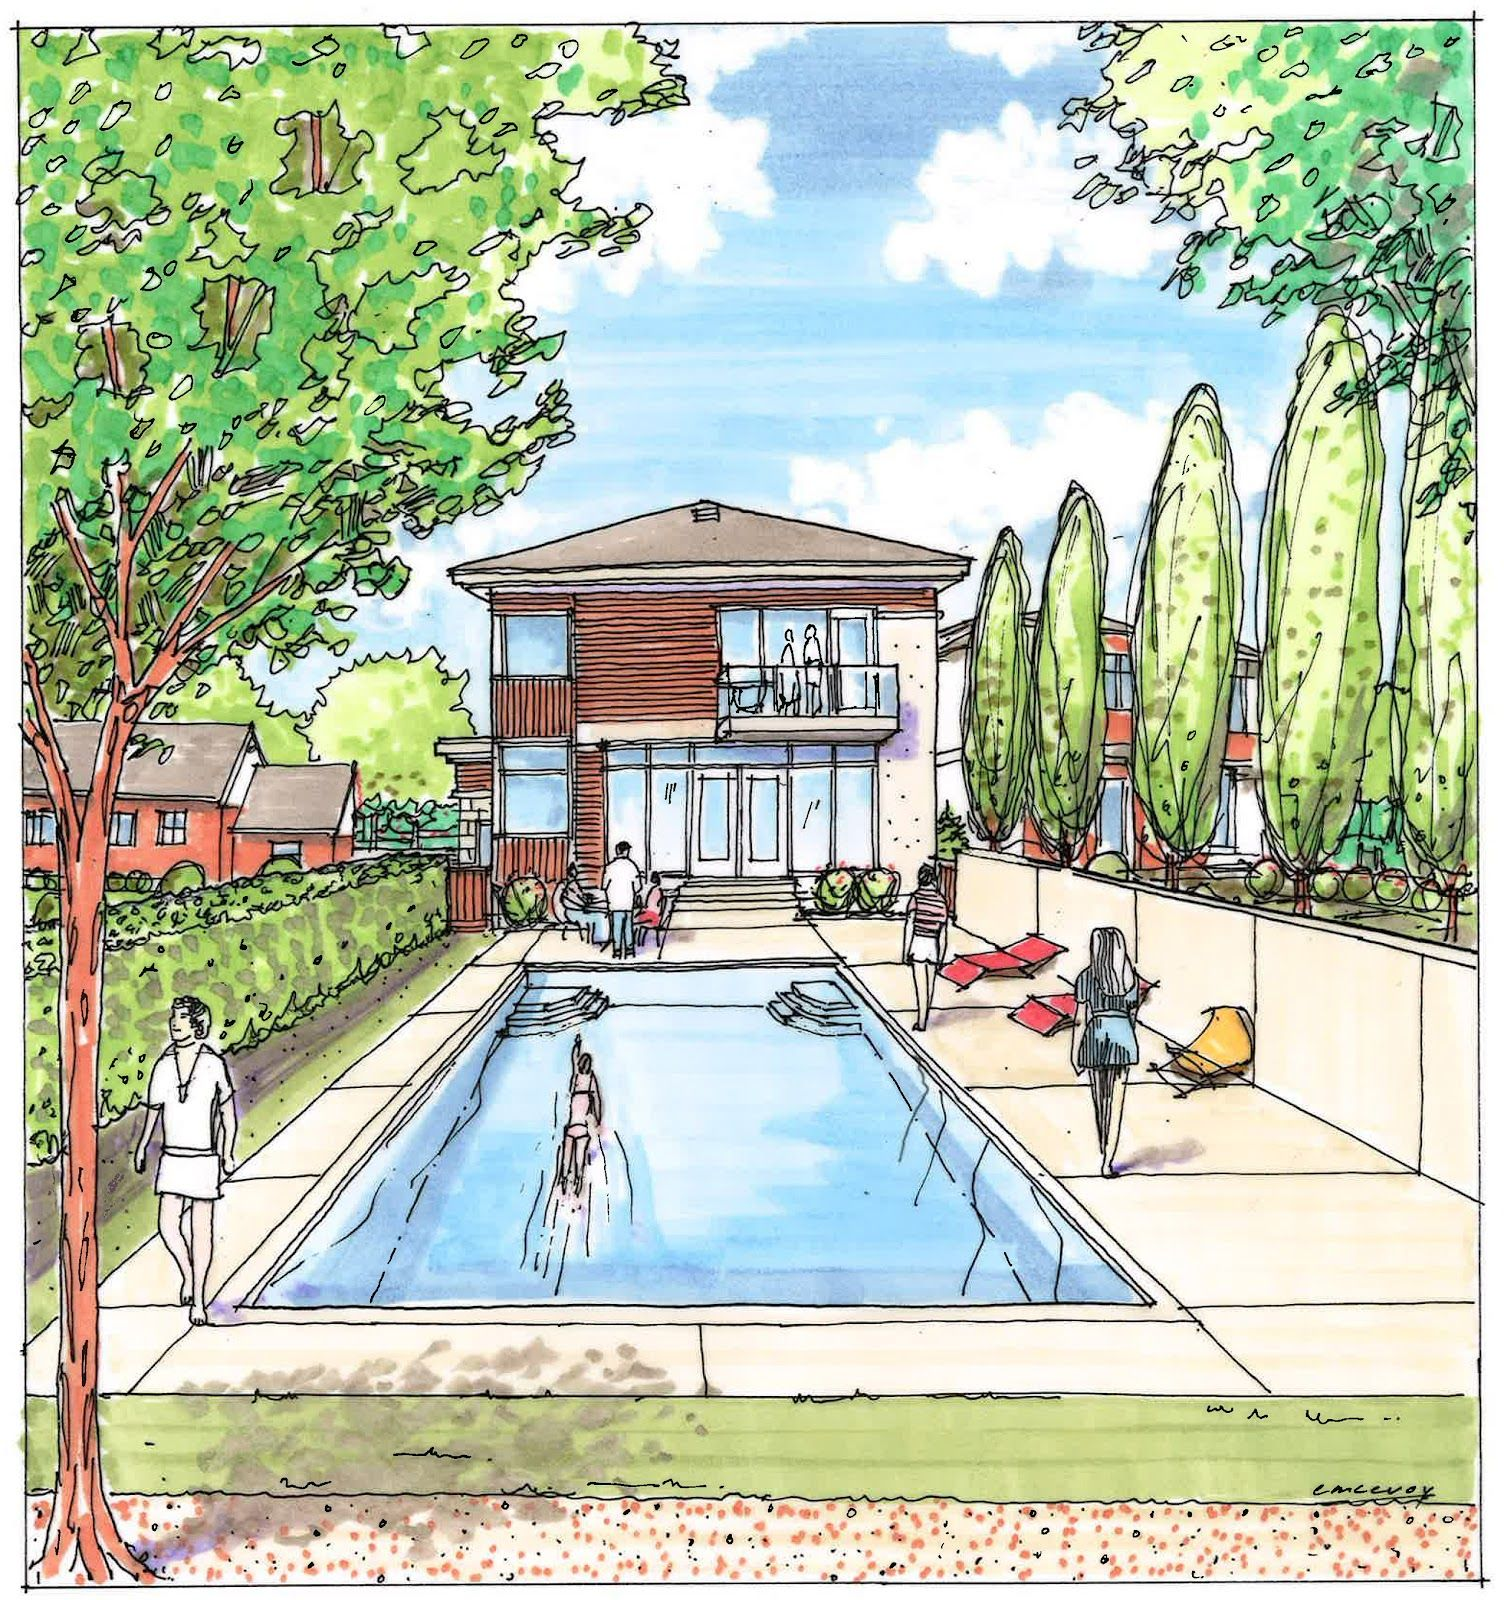 Landscaping design drawings google search dwell for Landscape design sketches